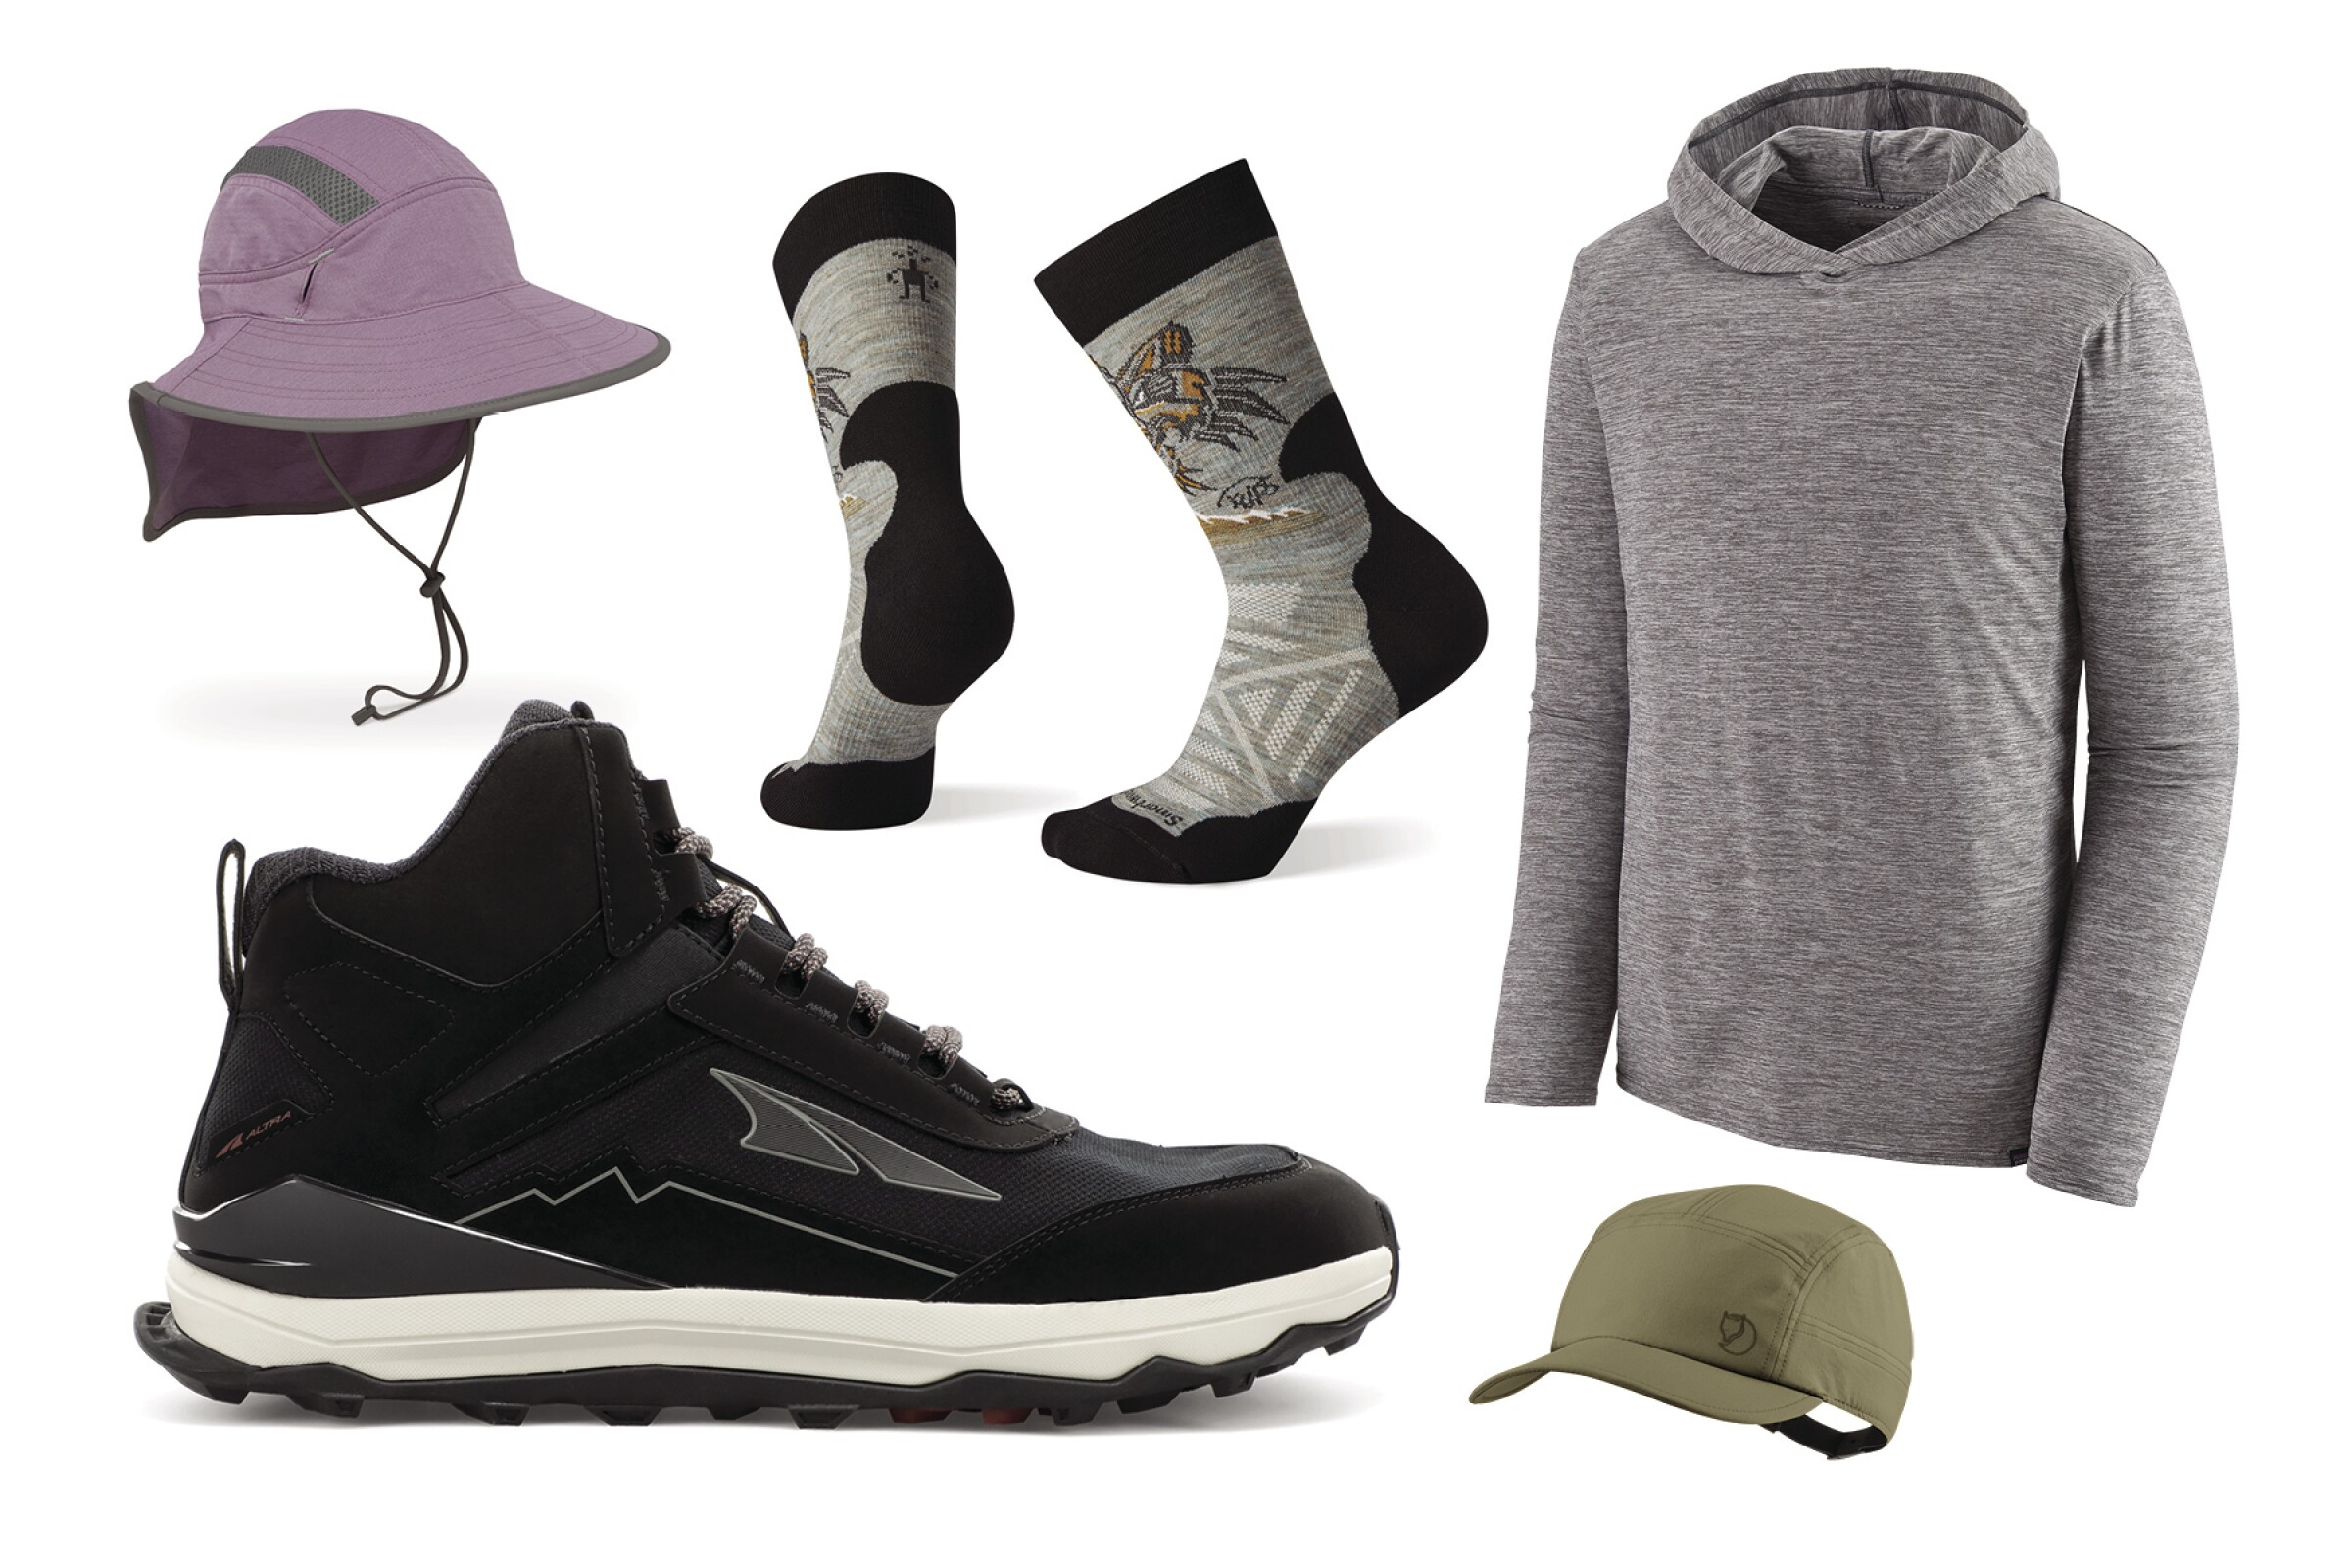 A photo collage of hiking apparel